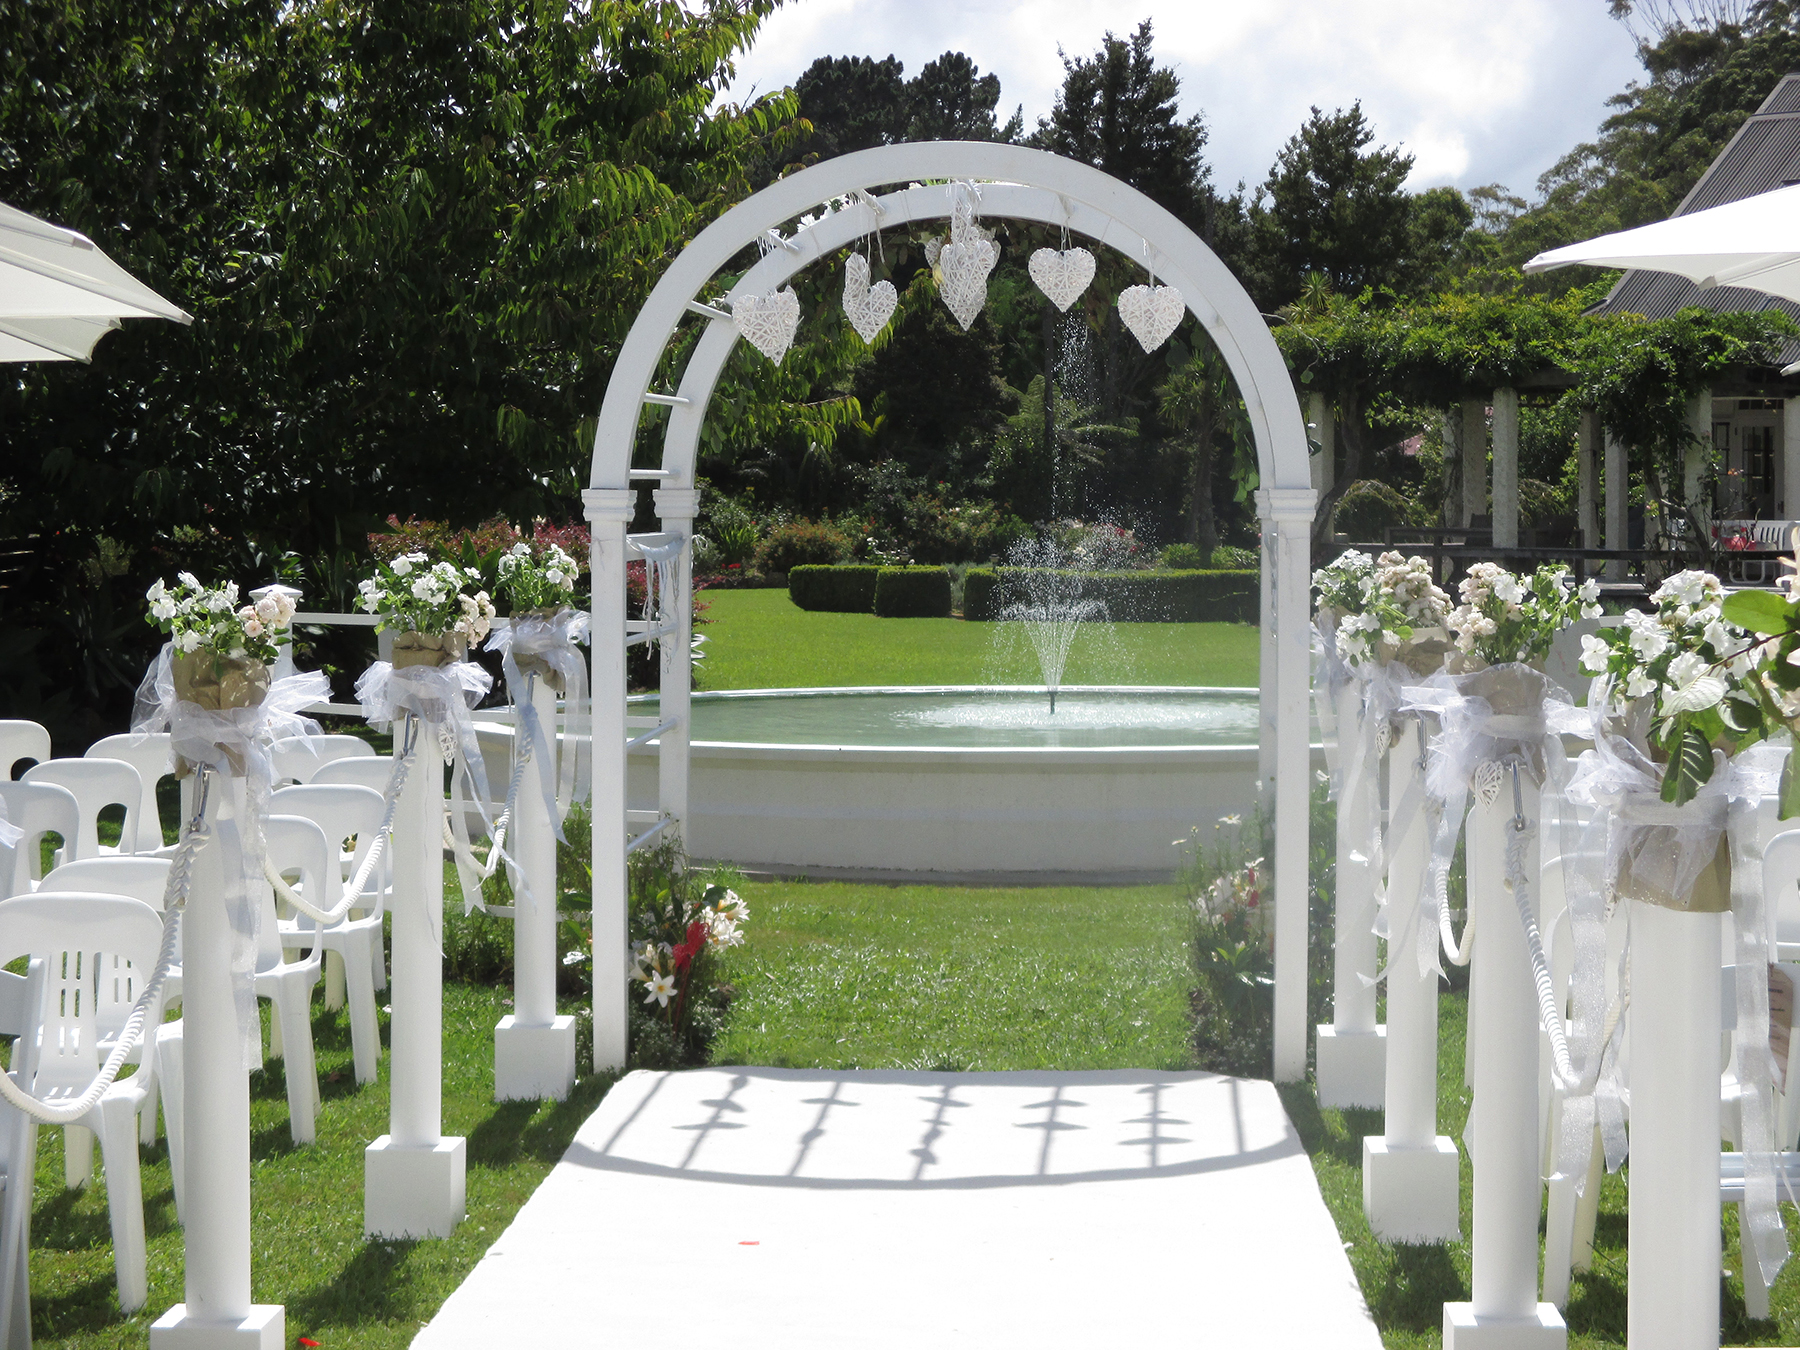 venue for weddings, family celebrations kerikeri